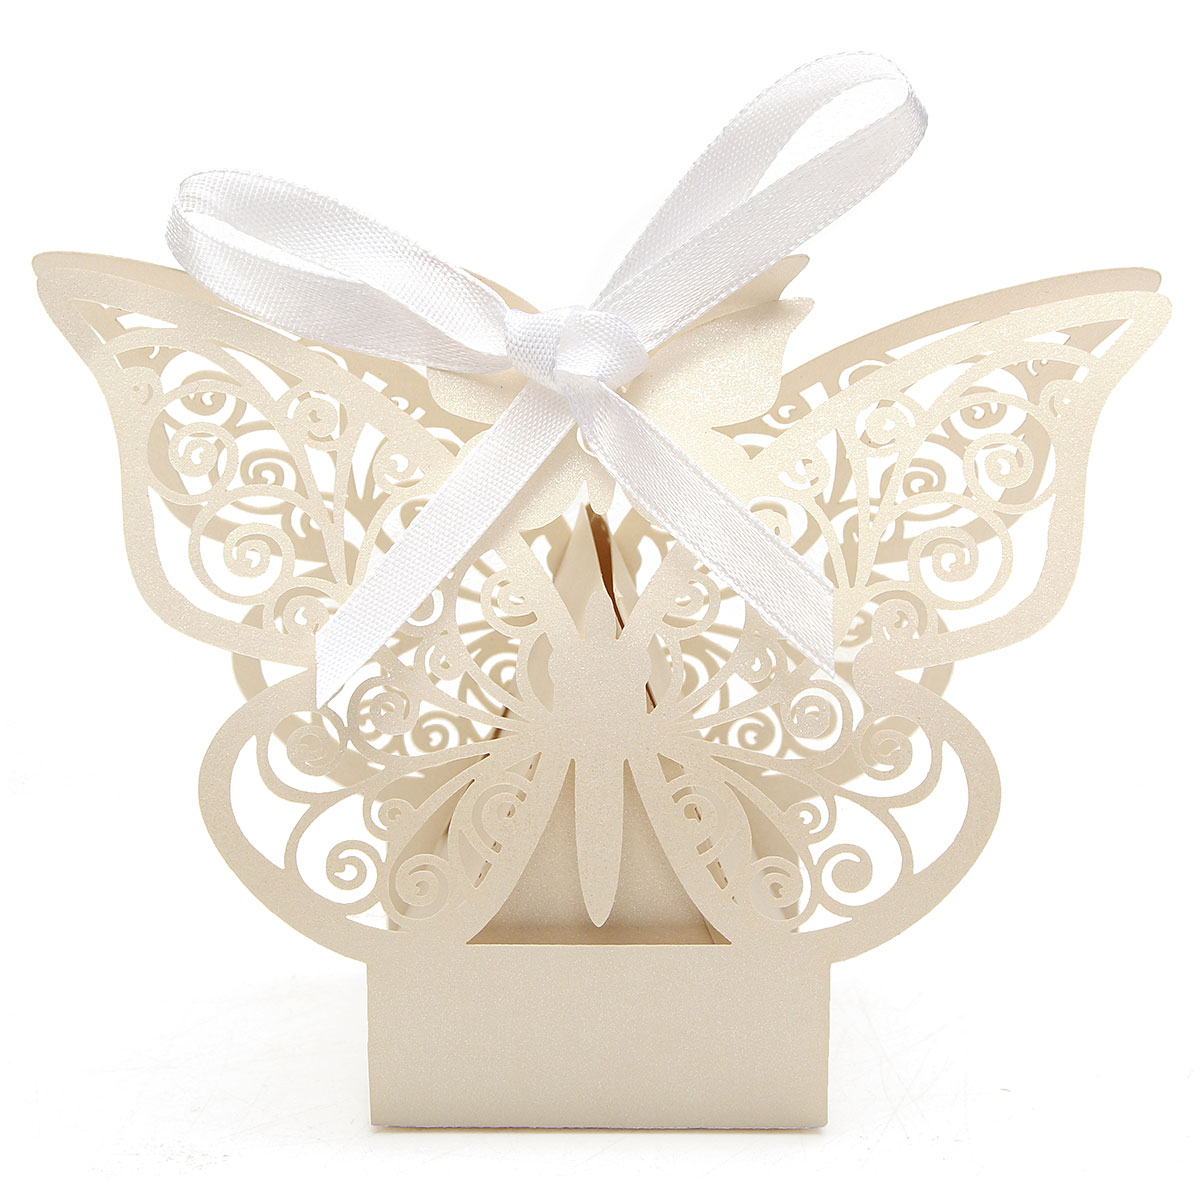 10Pcs Paper Butterfly Cut Candy Cake Boxes Wedding Party Gifts Favor Case Cake Style for Wedding Baby Shower Decorating Supplies,Pink color